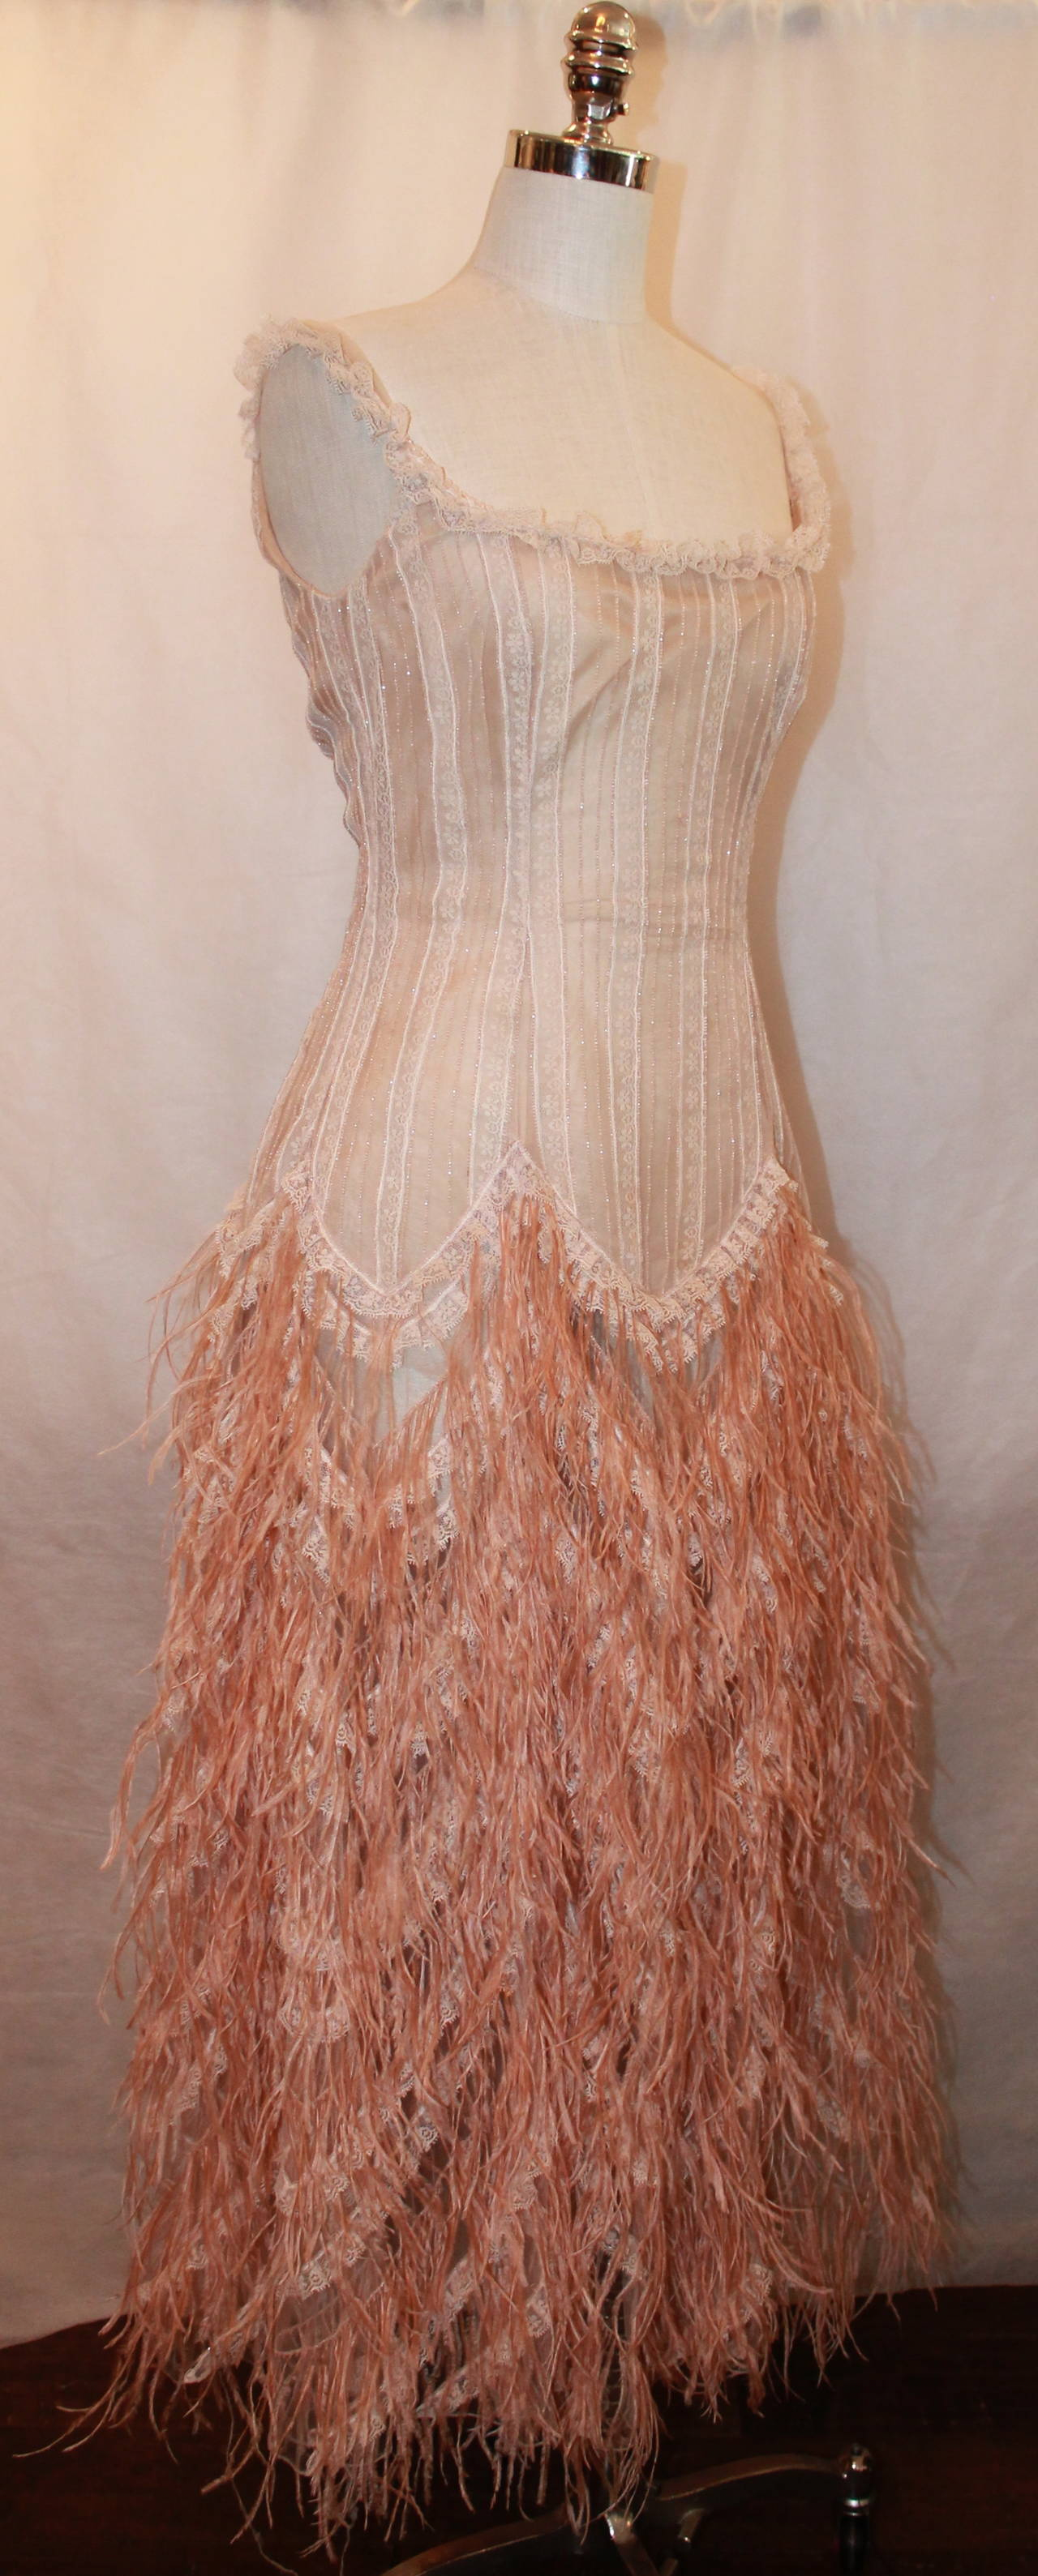 Oscar de la Renta Blush Lace Beaded Gown with Ostrich Feathers - M. This gown is in good condition with the only issue being on the bottom of the skirt (images 7-9). The bottom of the skirt has a rip on the side/back on the right side, but it is not